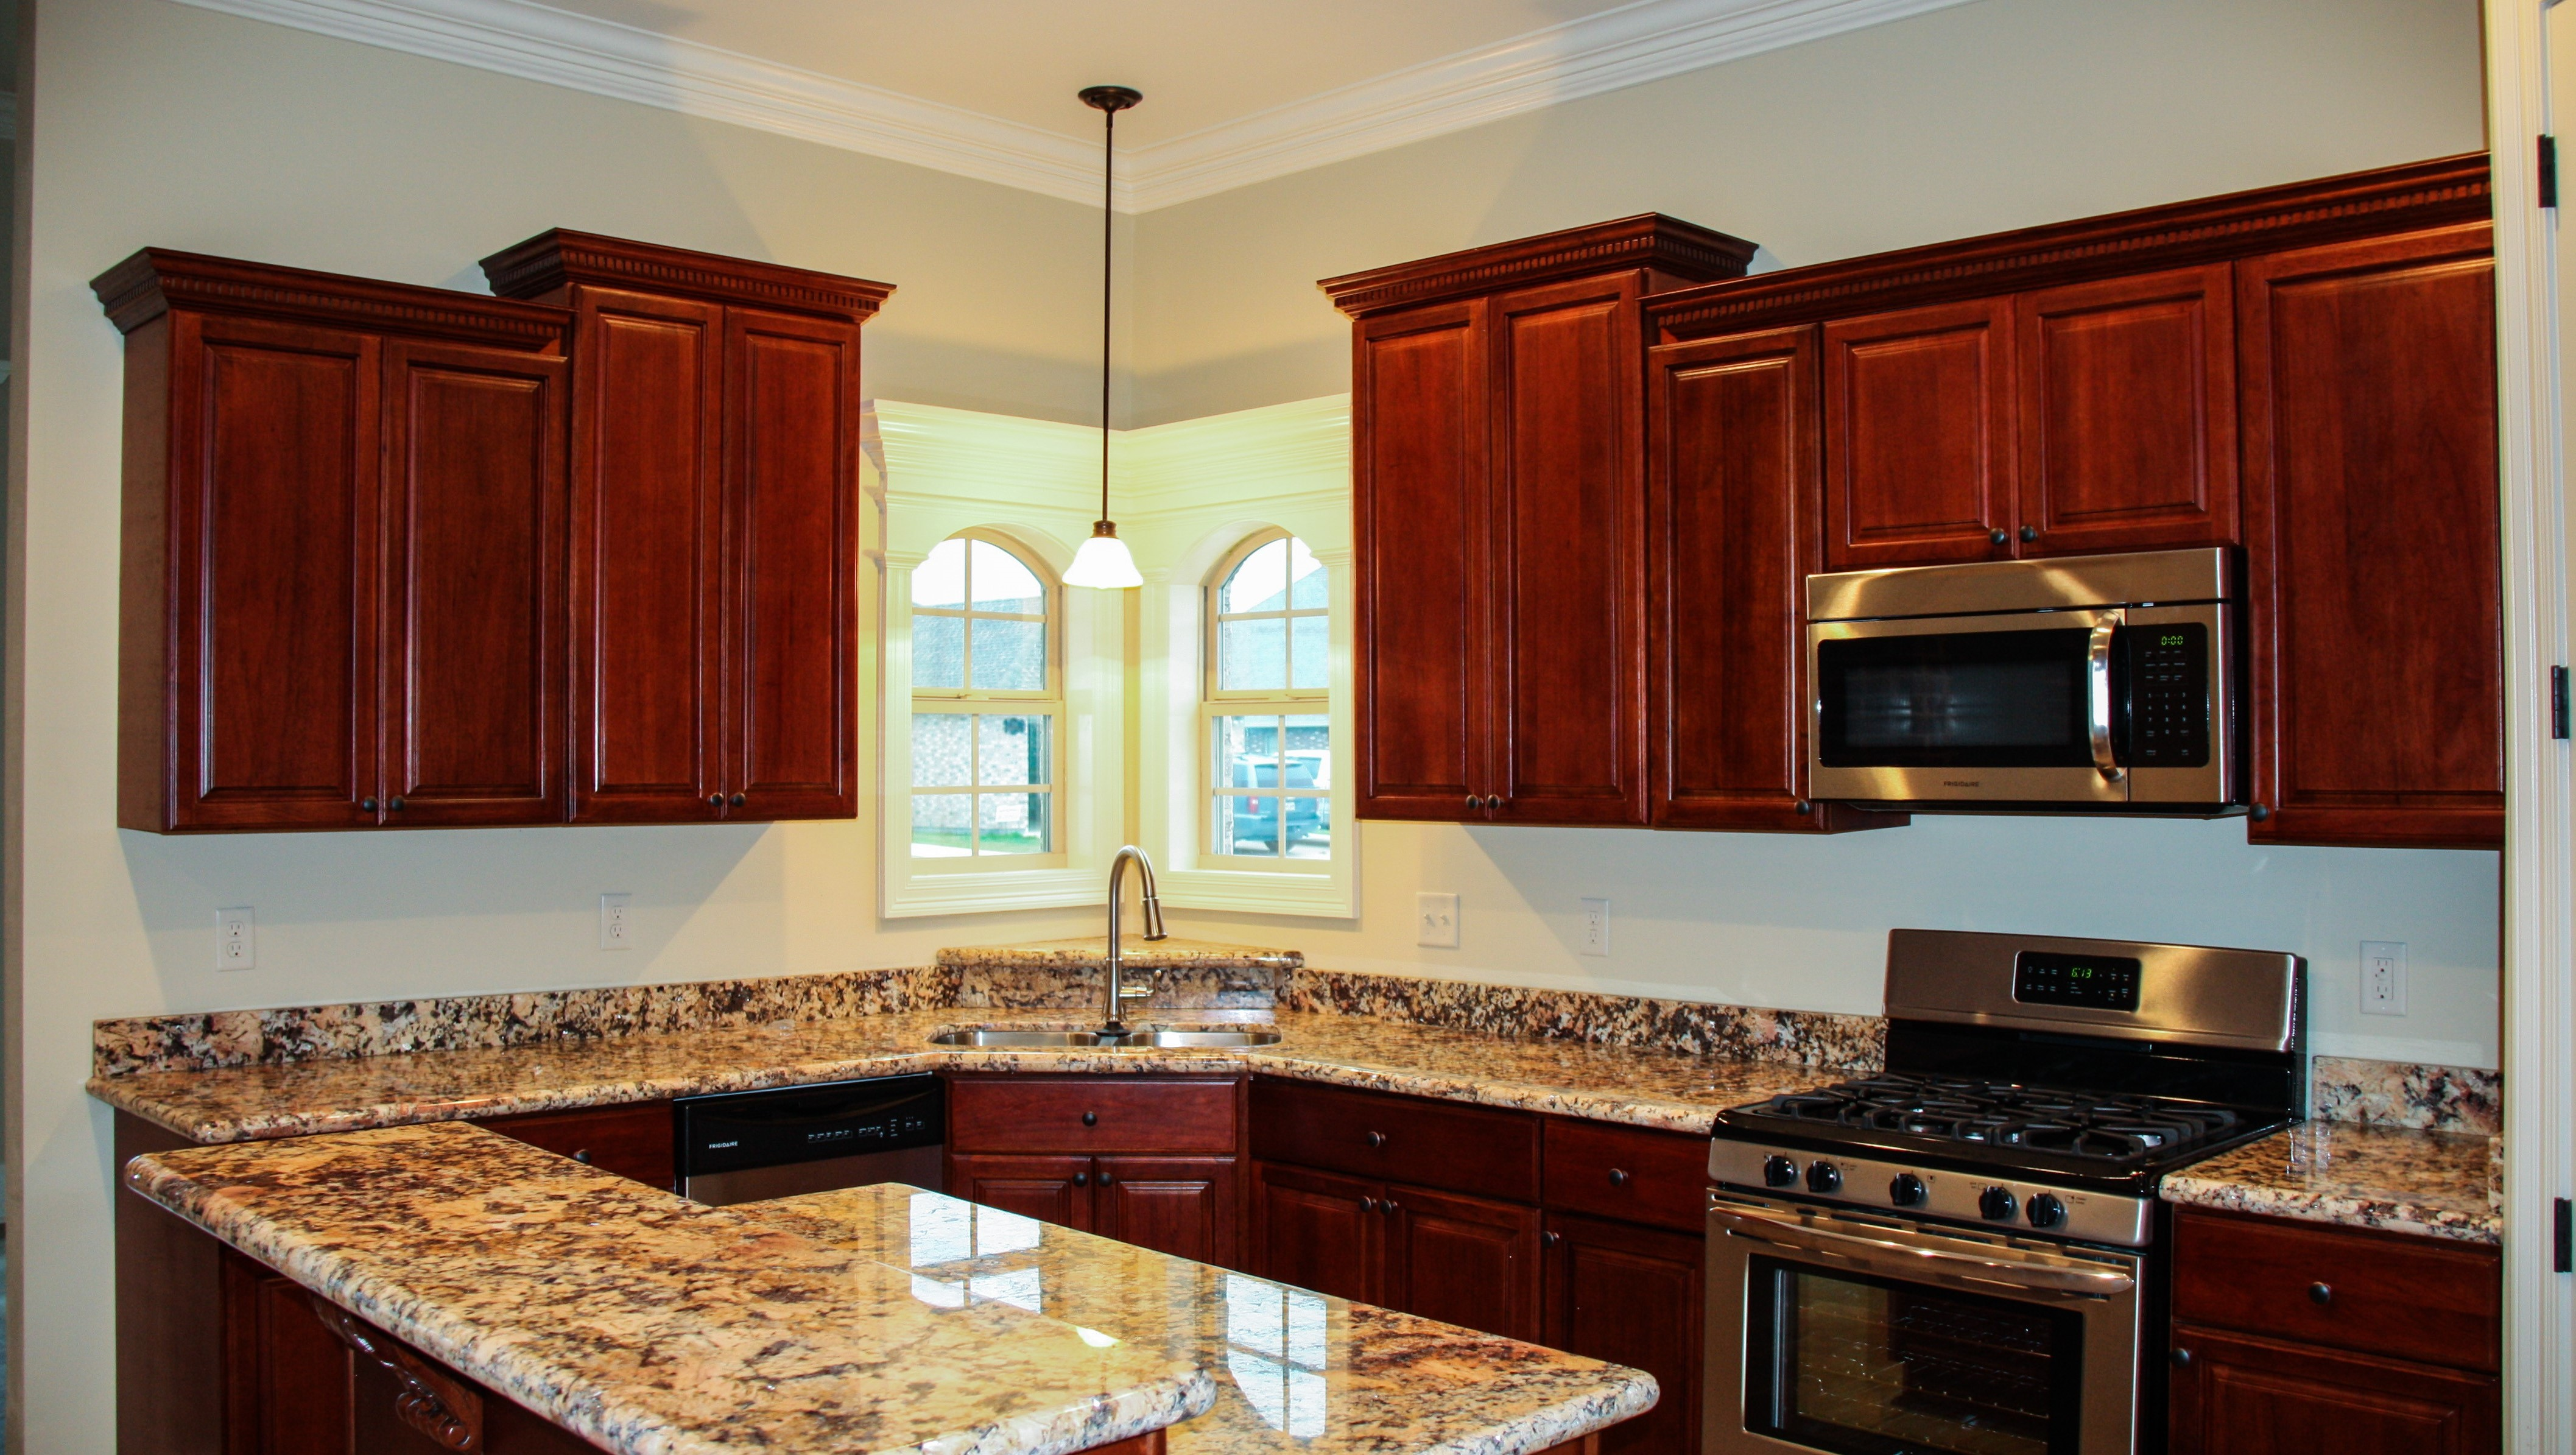 cabinet kingdom best deals on kitchen cabinets in austin tx diamond kitchen cabinets best deal great quality and